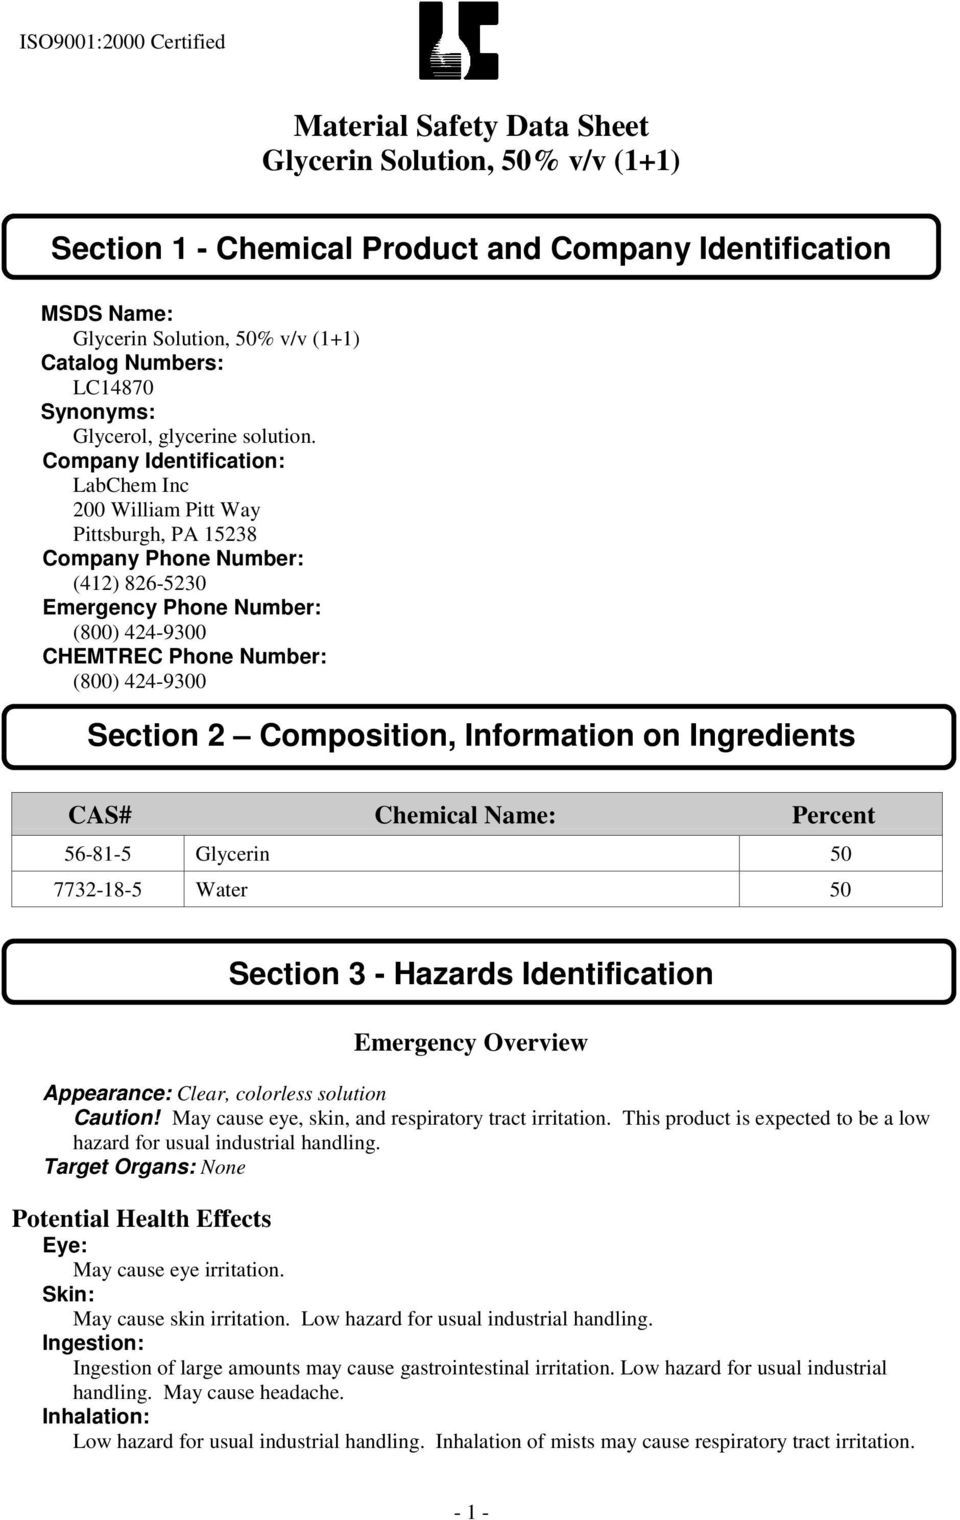 2 Composition, Information on Ingredients CAS# Chemical Name: Percent 56-81-5 Glycerin 50 7732-18-5 Water 50 Section 3 - Hazards Identification Emergency Overview Appearance: Clear, colorless